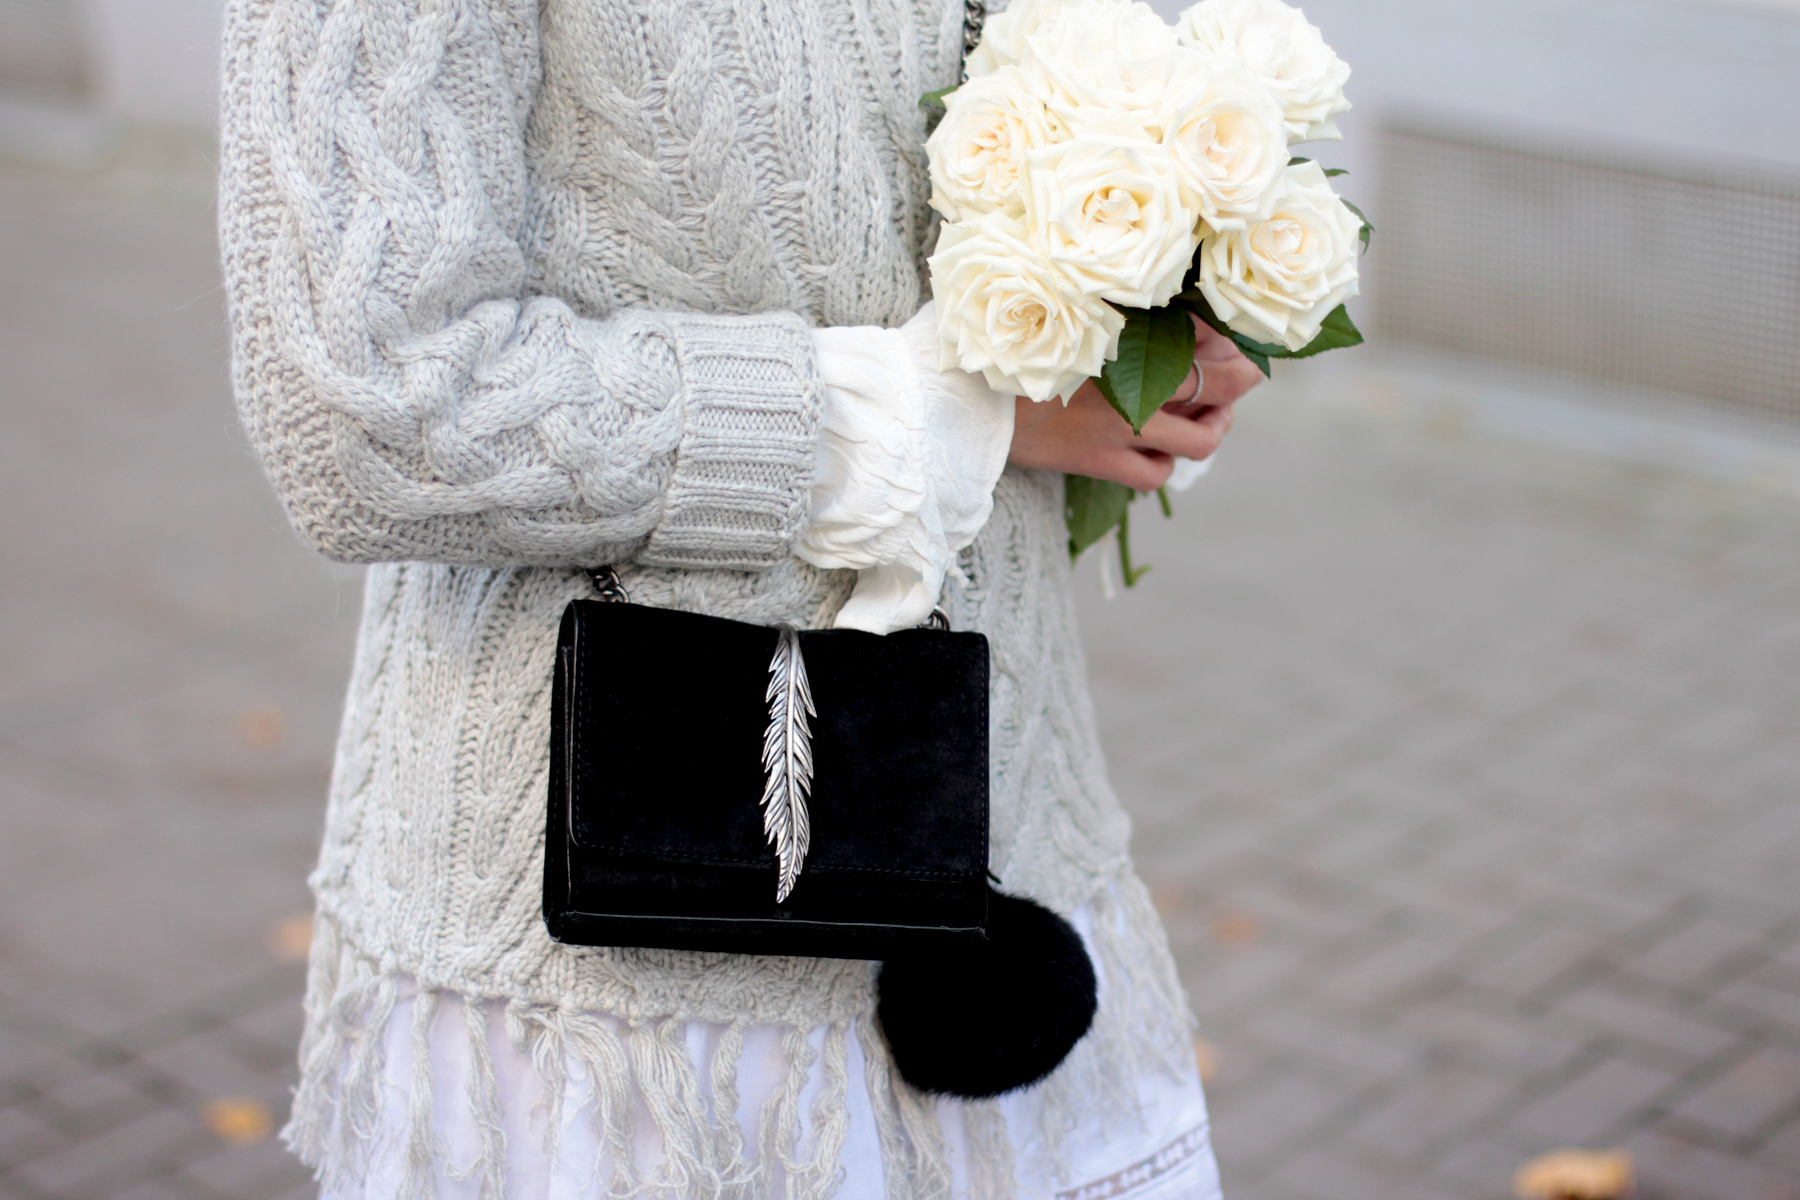 cute romantic vintage seventies knit grey wide tassles suede black leather boots zara edited the label prada white roses ootd outfit fashionblogger germany ricarda schernus cats & dogs blog 3